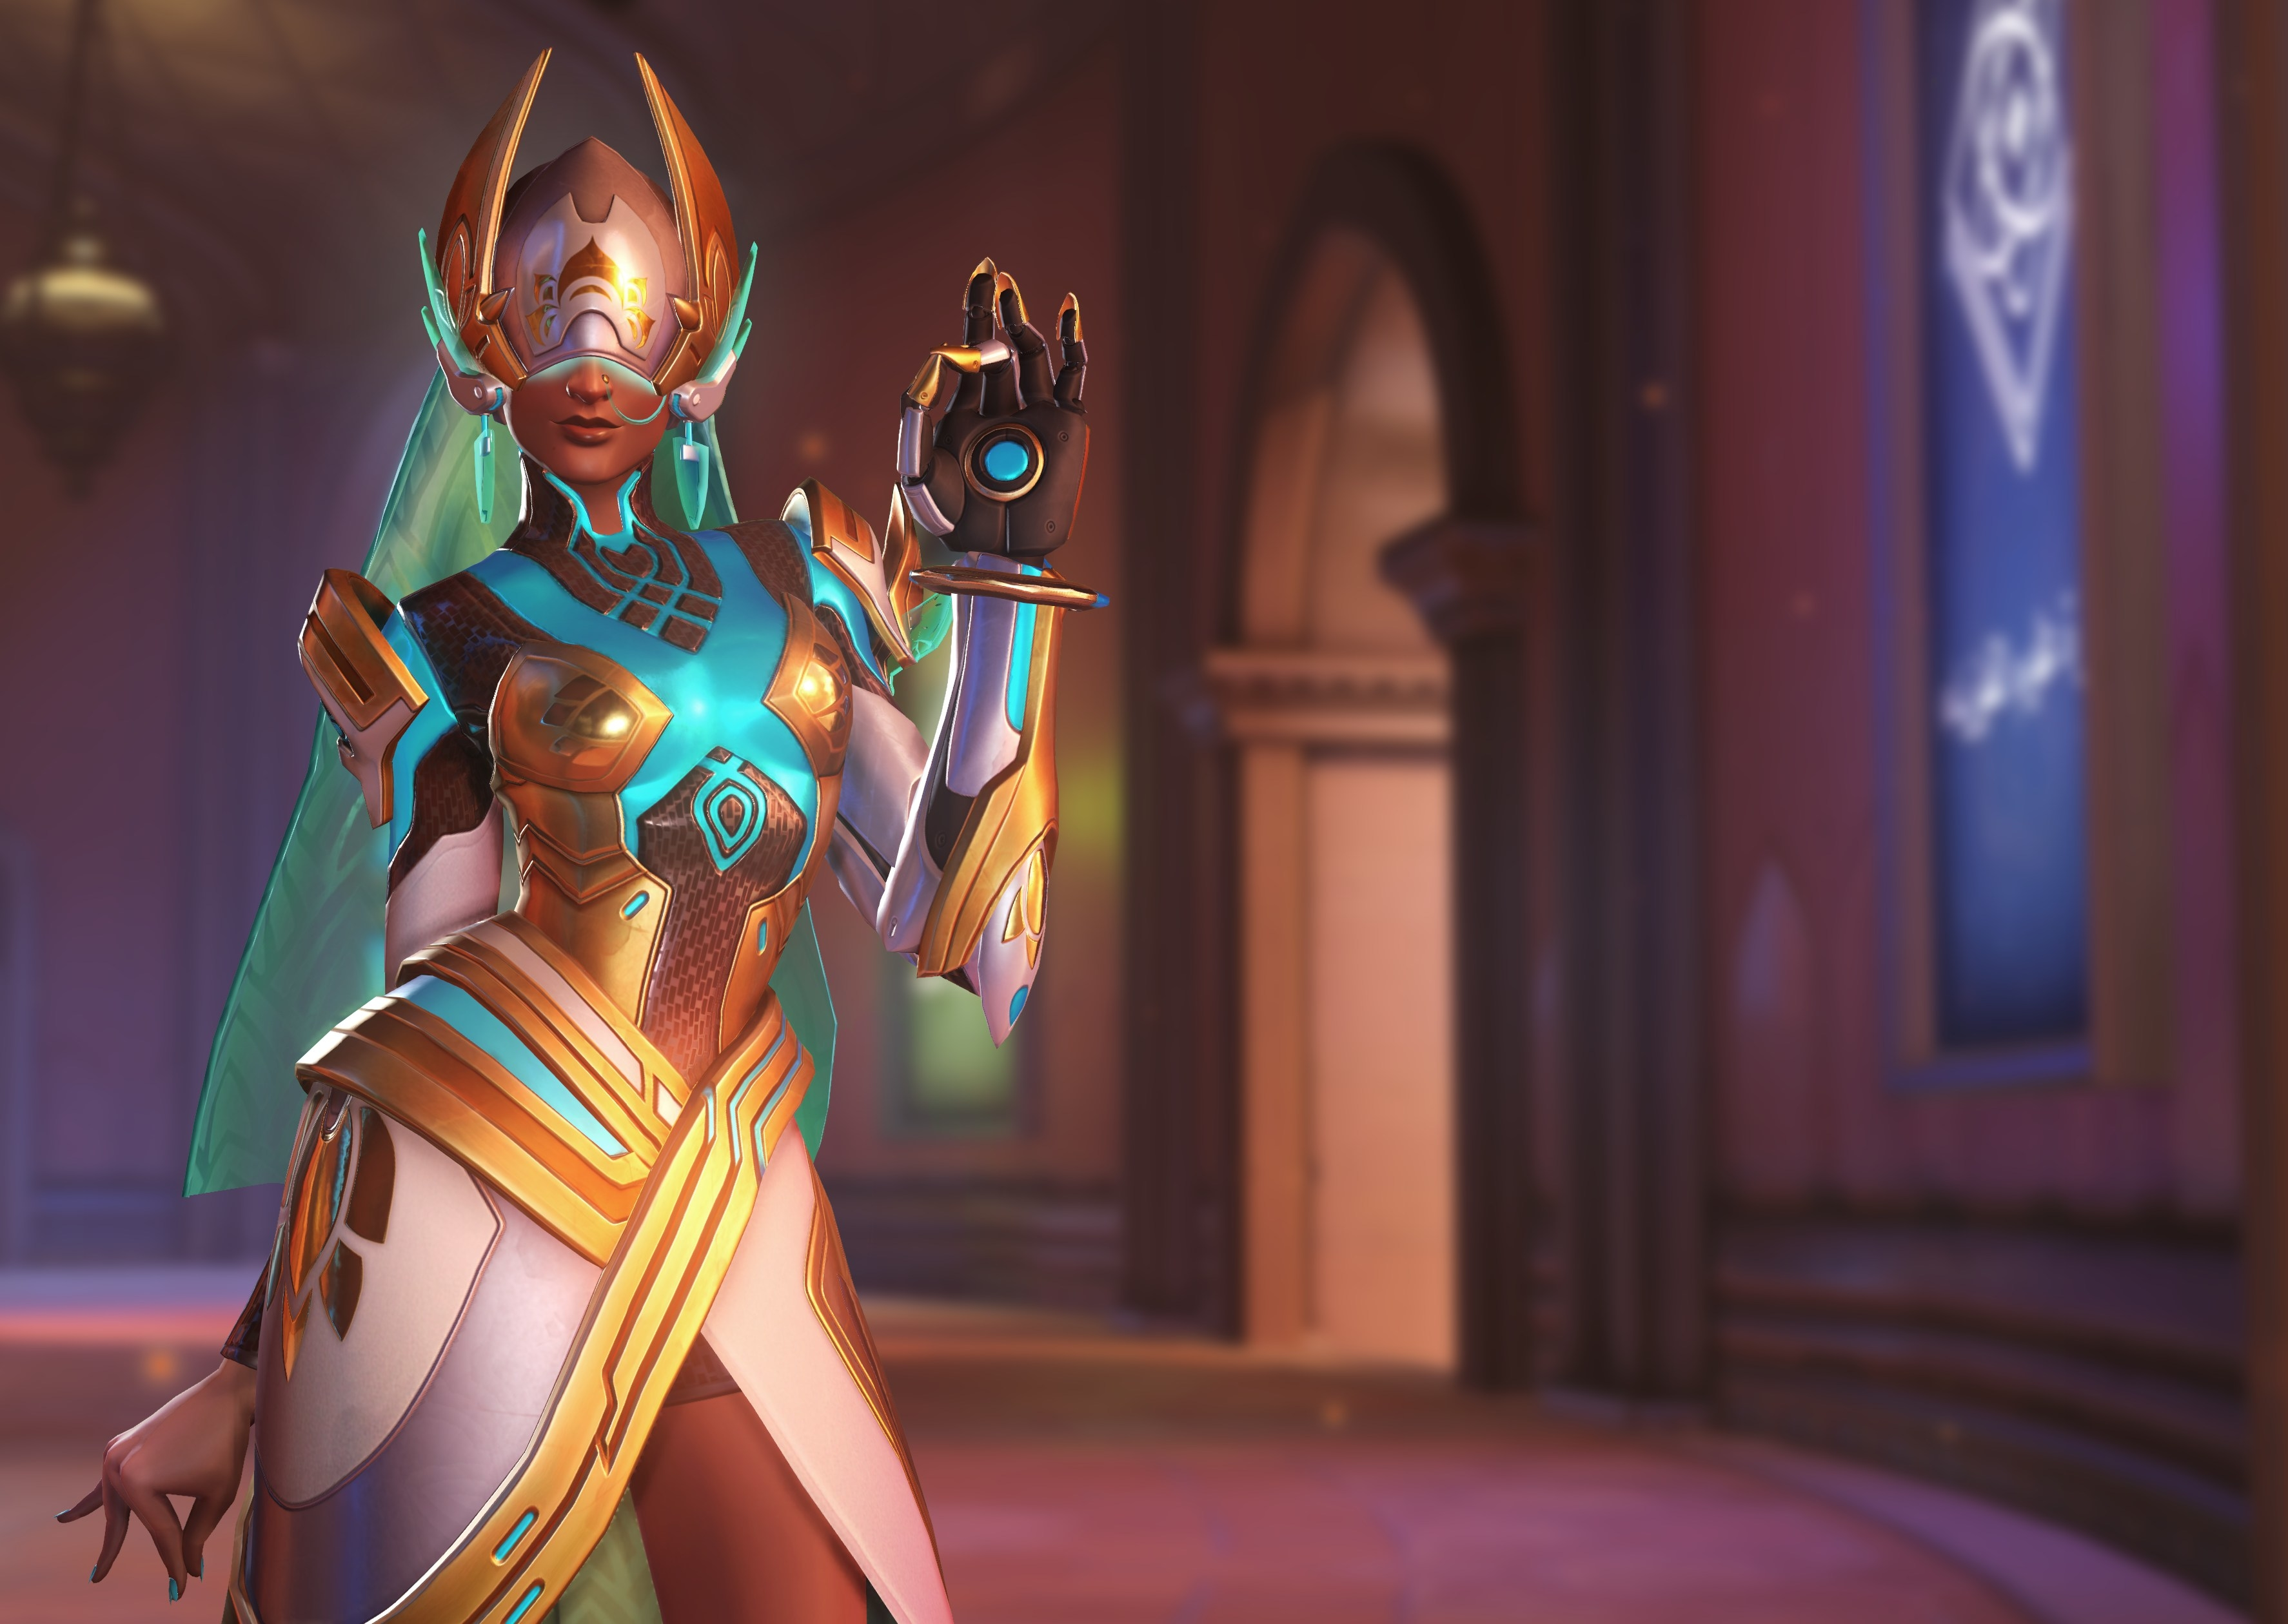 Symmetra Overwatch 4k, HD Games, 4k Wallpapers, Images, Backgrounds ...